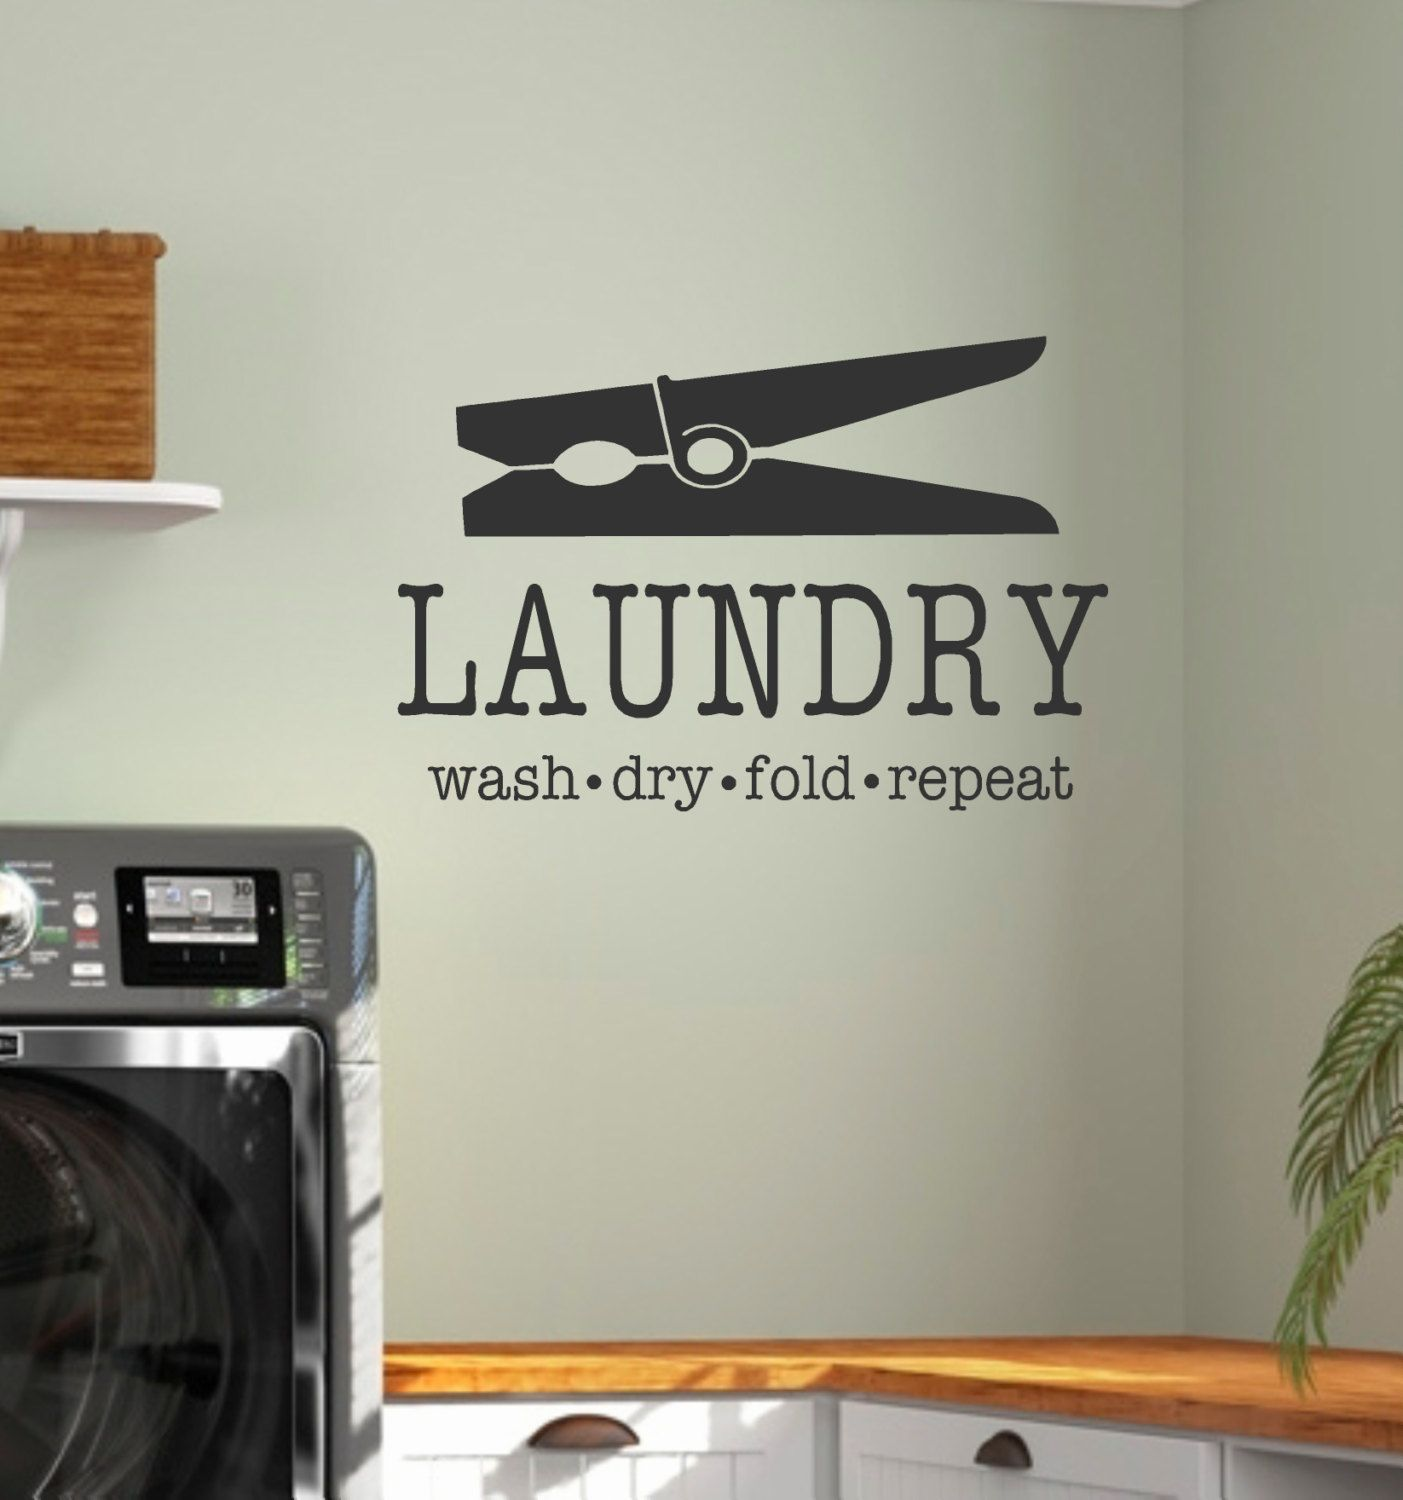 Laundry vinyl wall decal laundry wash dry fold repeat with clothes laundry vinyl wall decal laundry wash dry fold repeat with clothes pin laundry amipublicfo Image collections